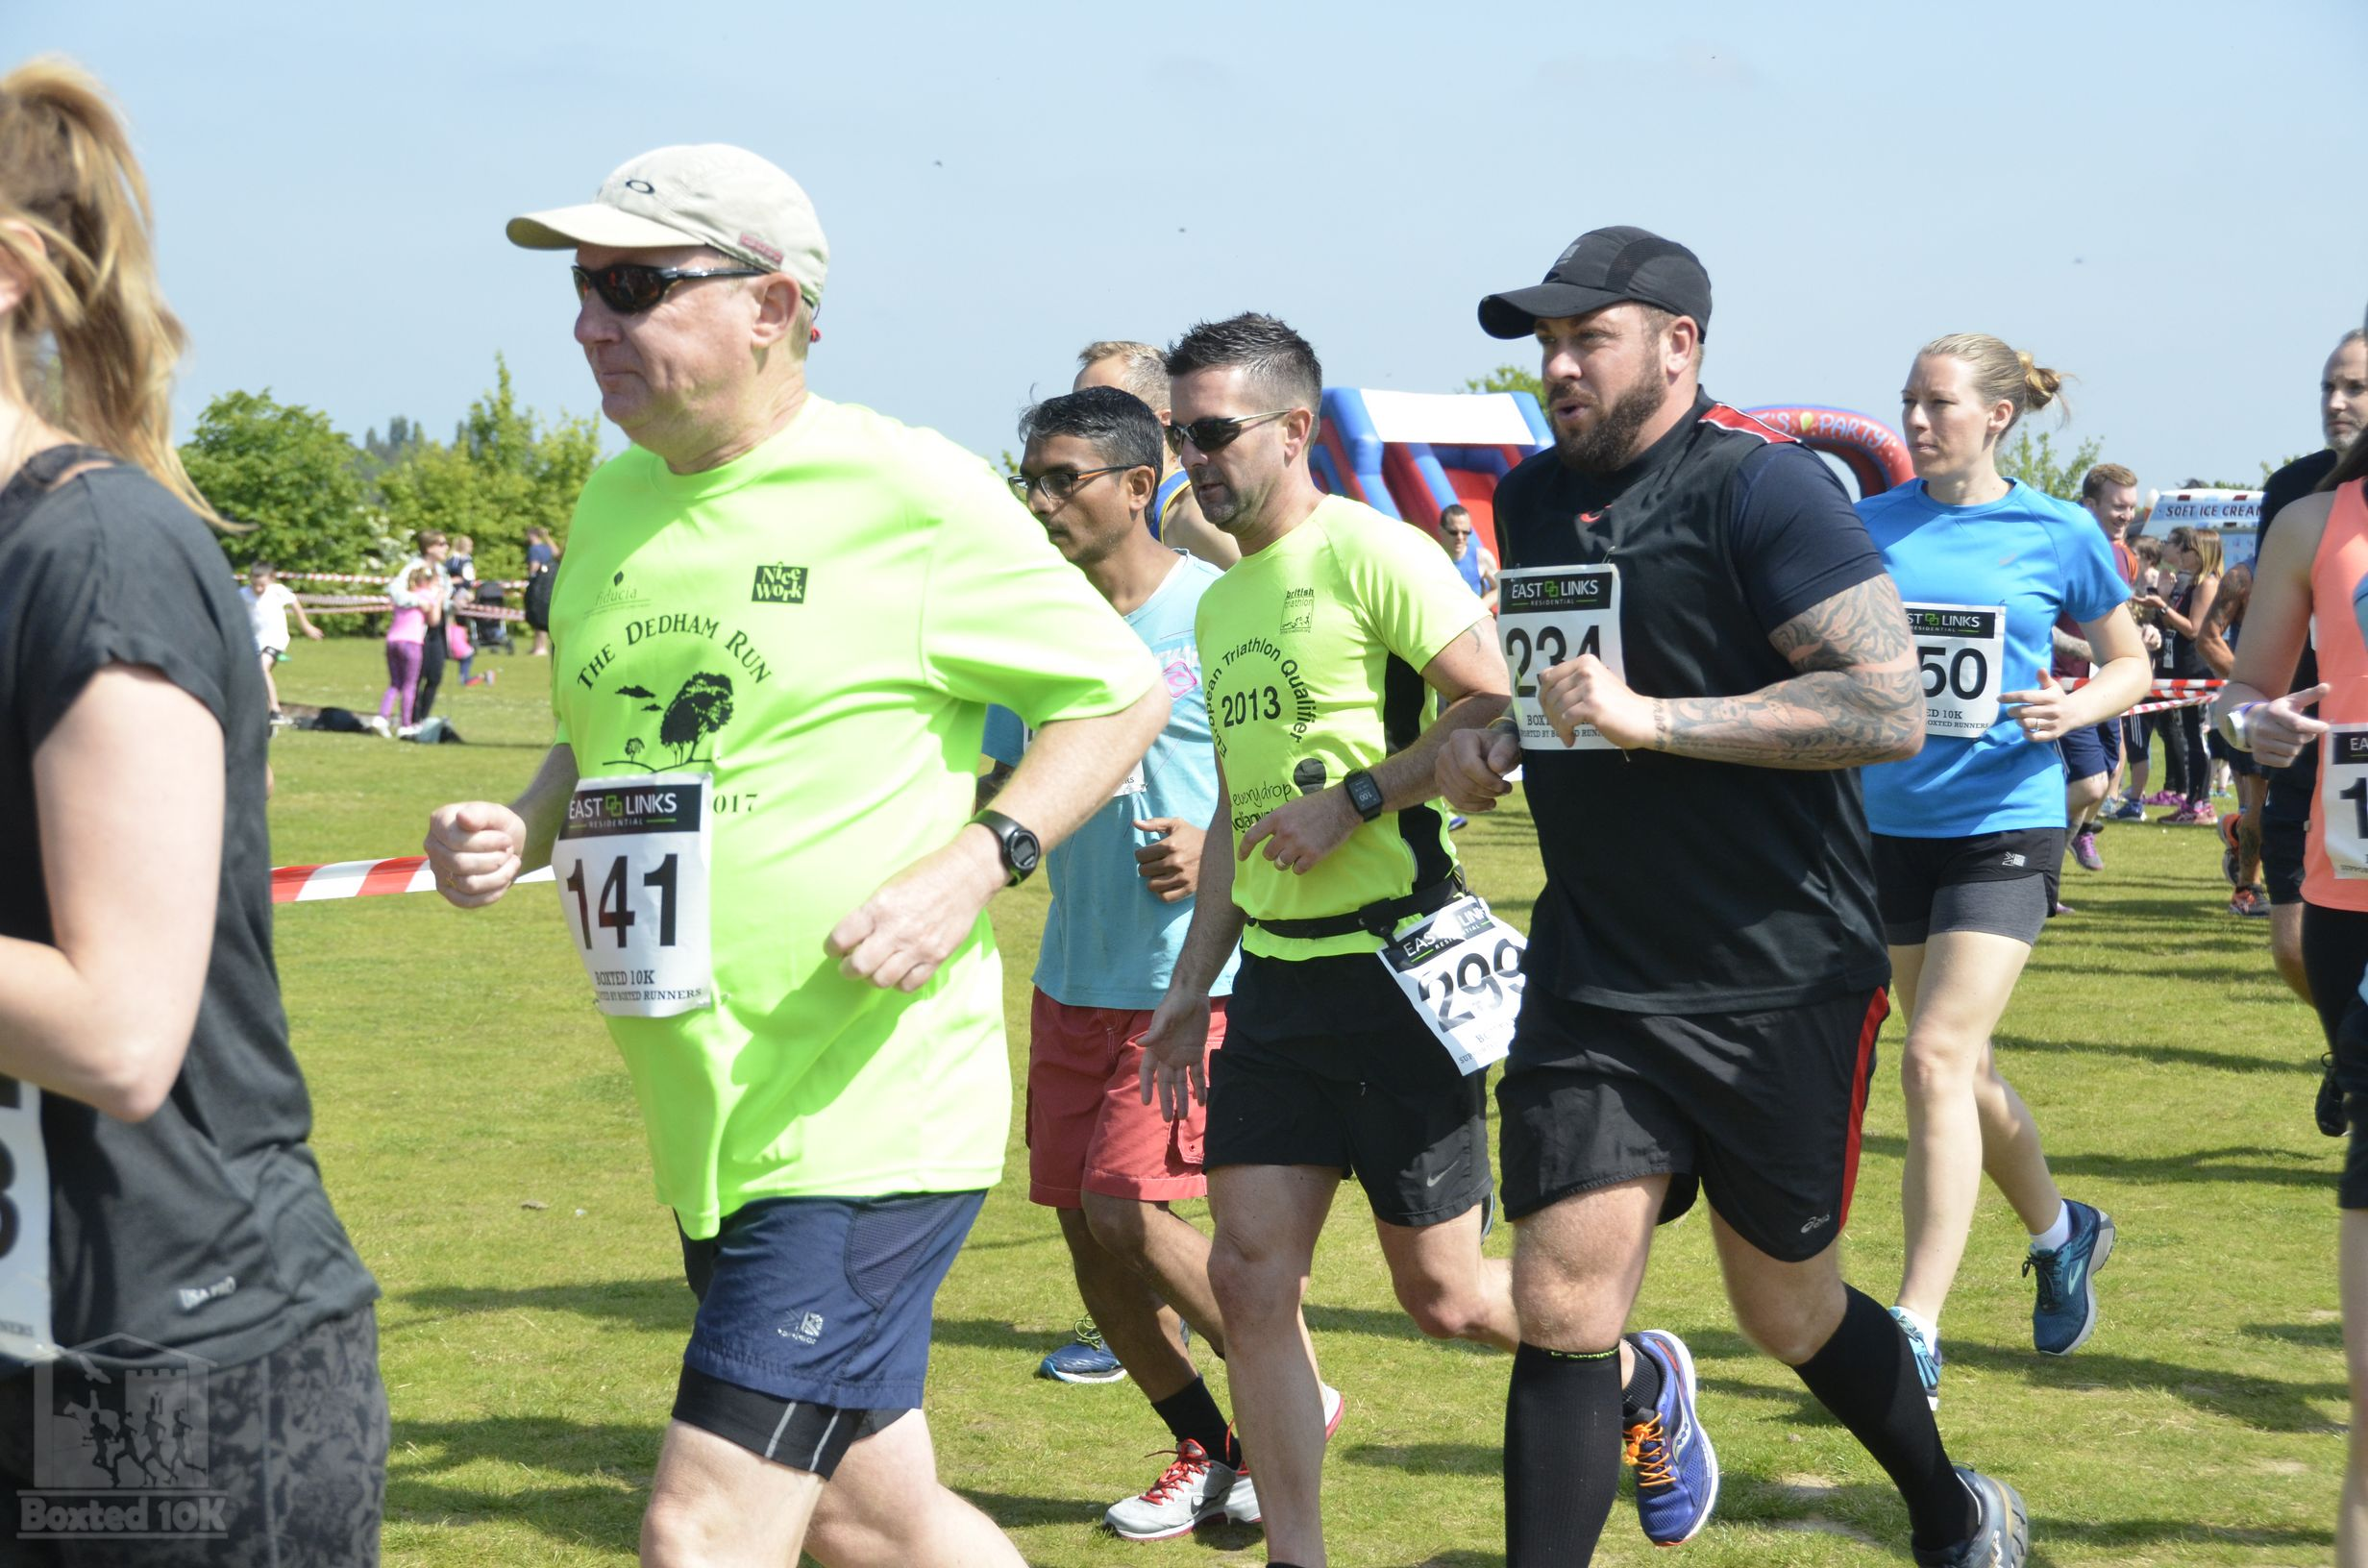 Boxted10k-00085